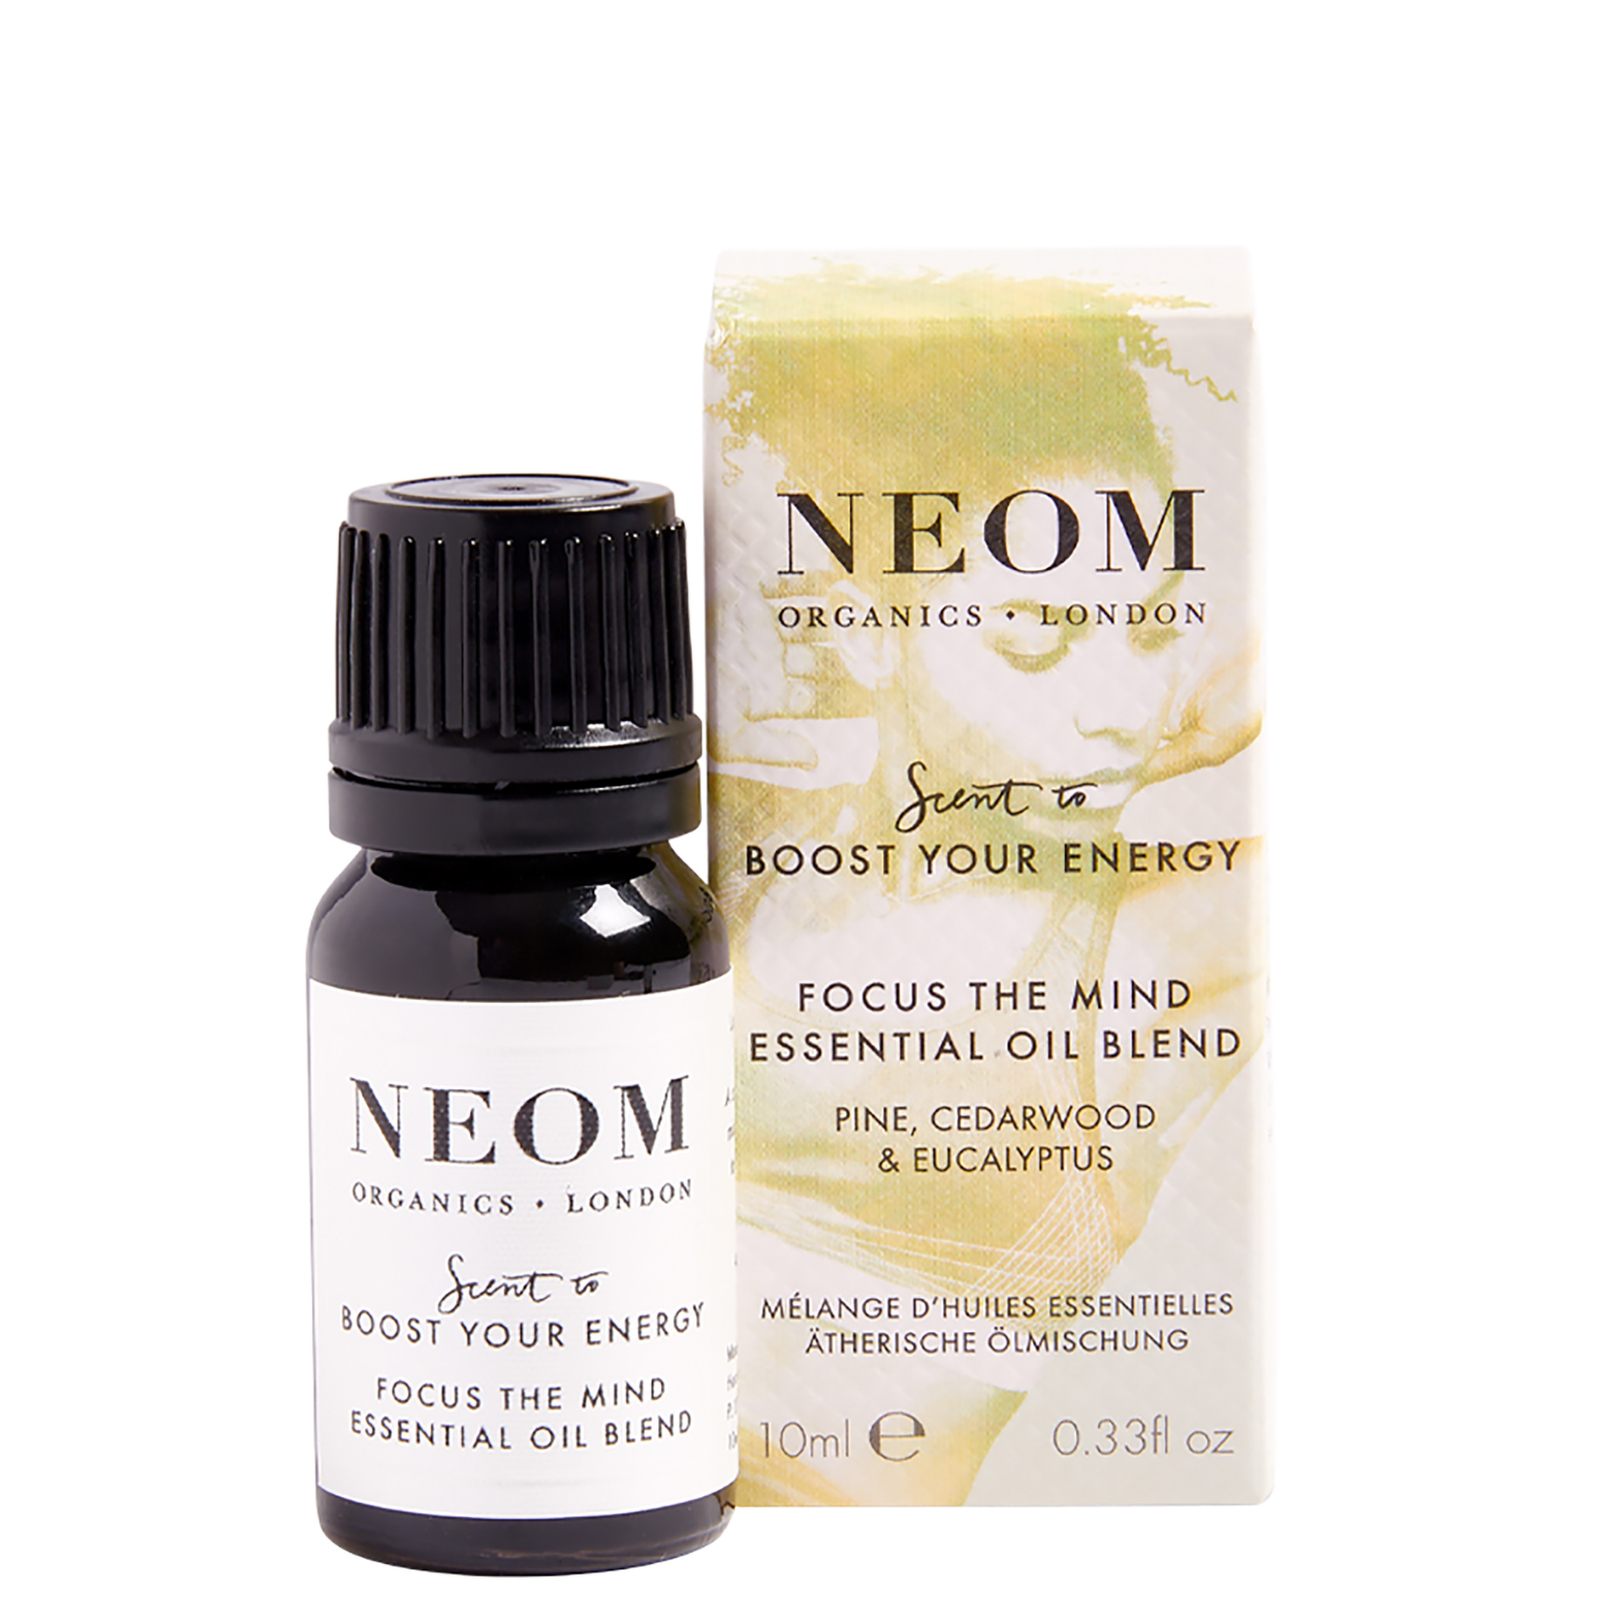 Neom Organics London Scent To Boost Your Energy Focus the Mind Essential Oil Blend 10ml